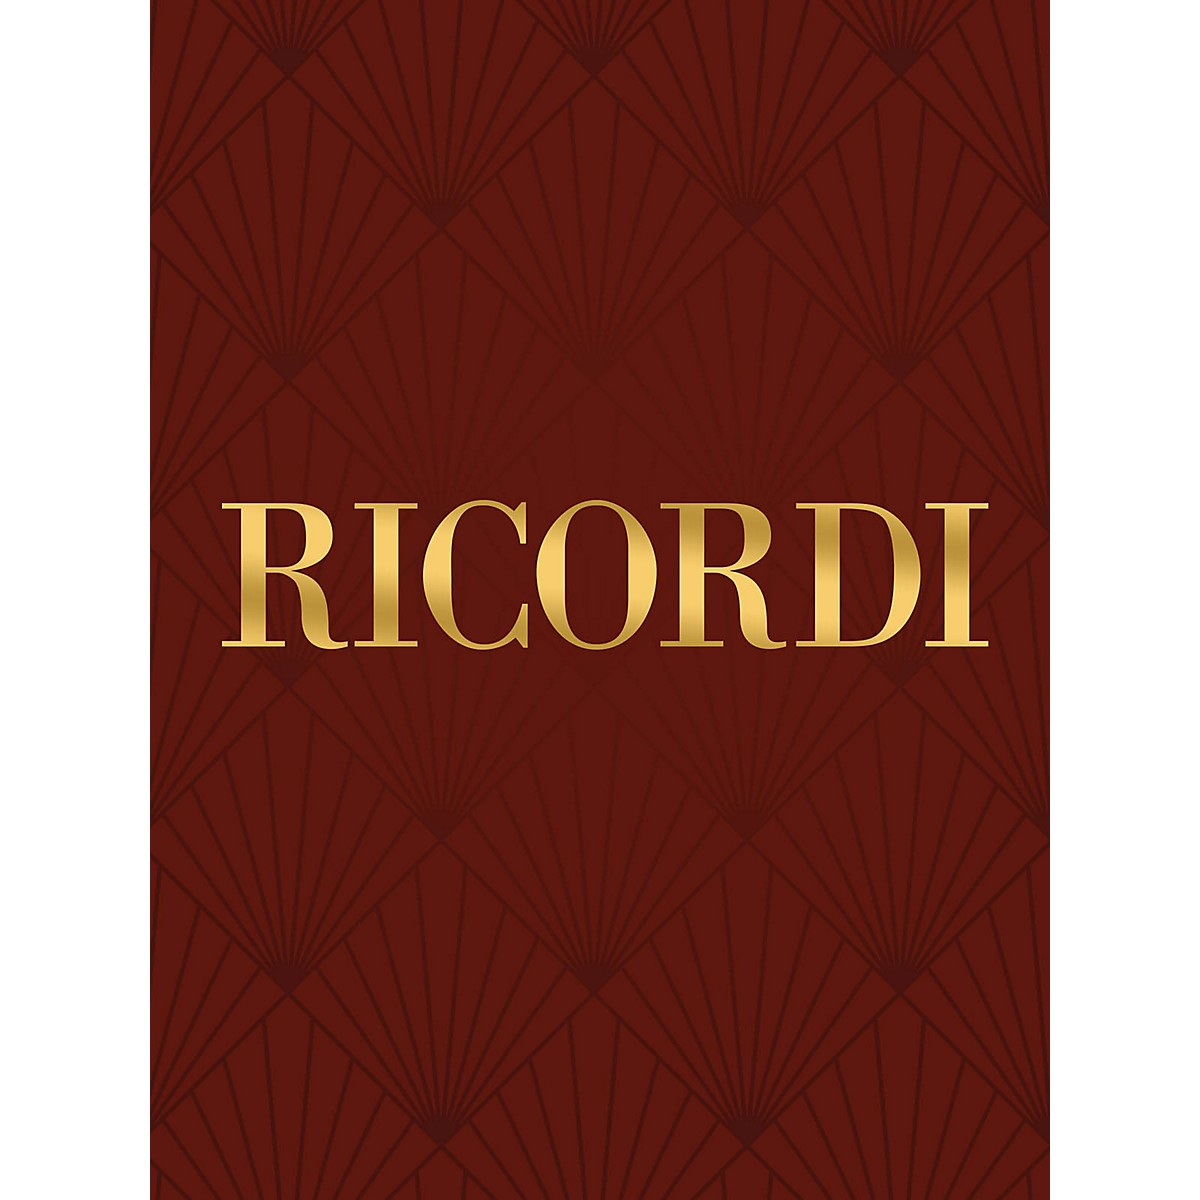 Ricordi Symphony No. 9 (Piano Solo) Piano Large Works Series Composed by Ludwig van Beethoven